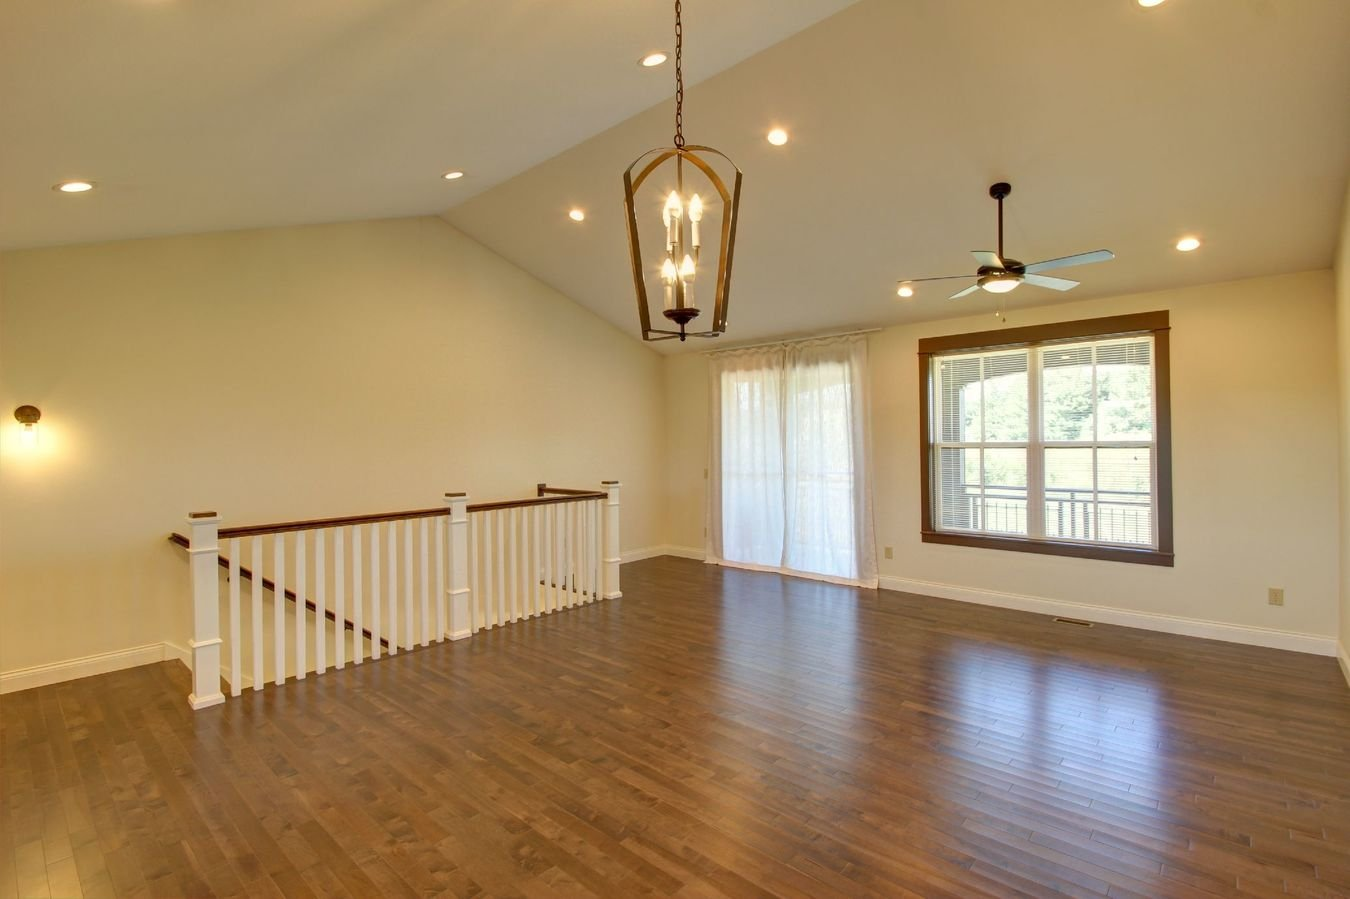 2 Bedrooms 2 Bathrooms Apartment for rent at Verona Park in Bloomington, IN